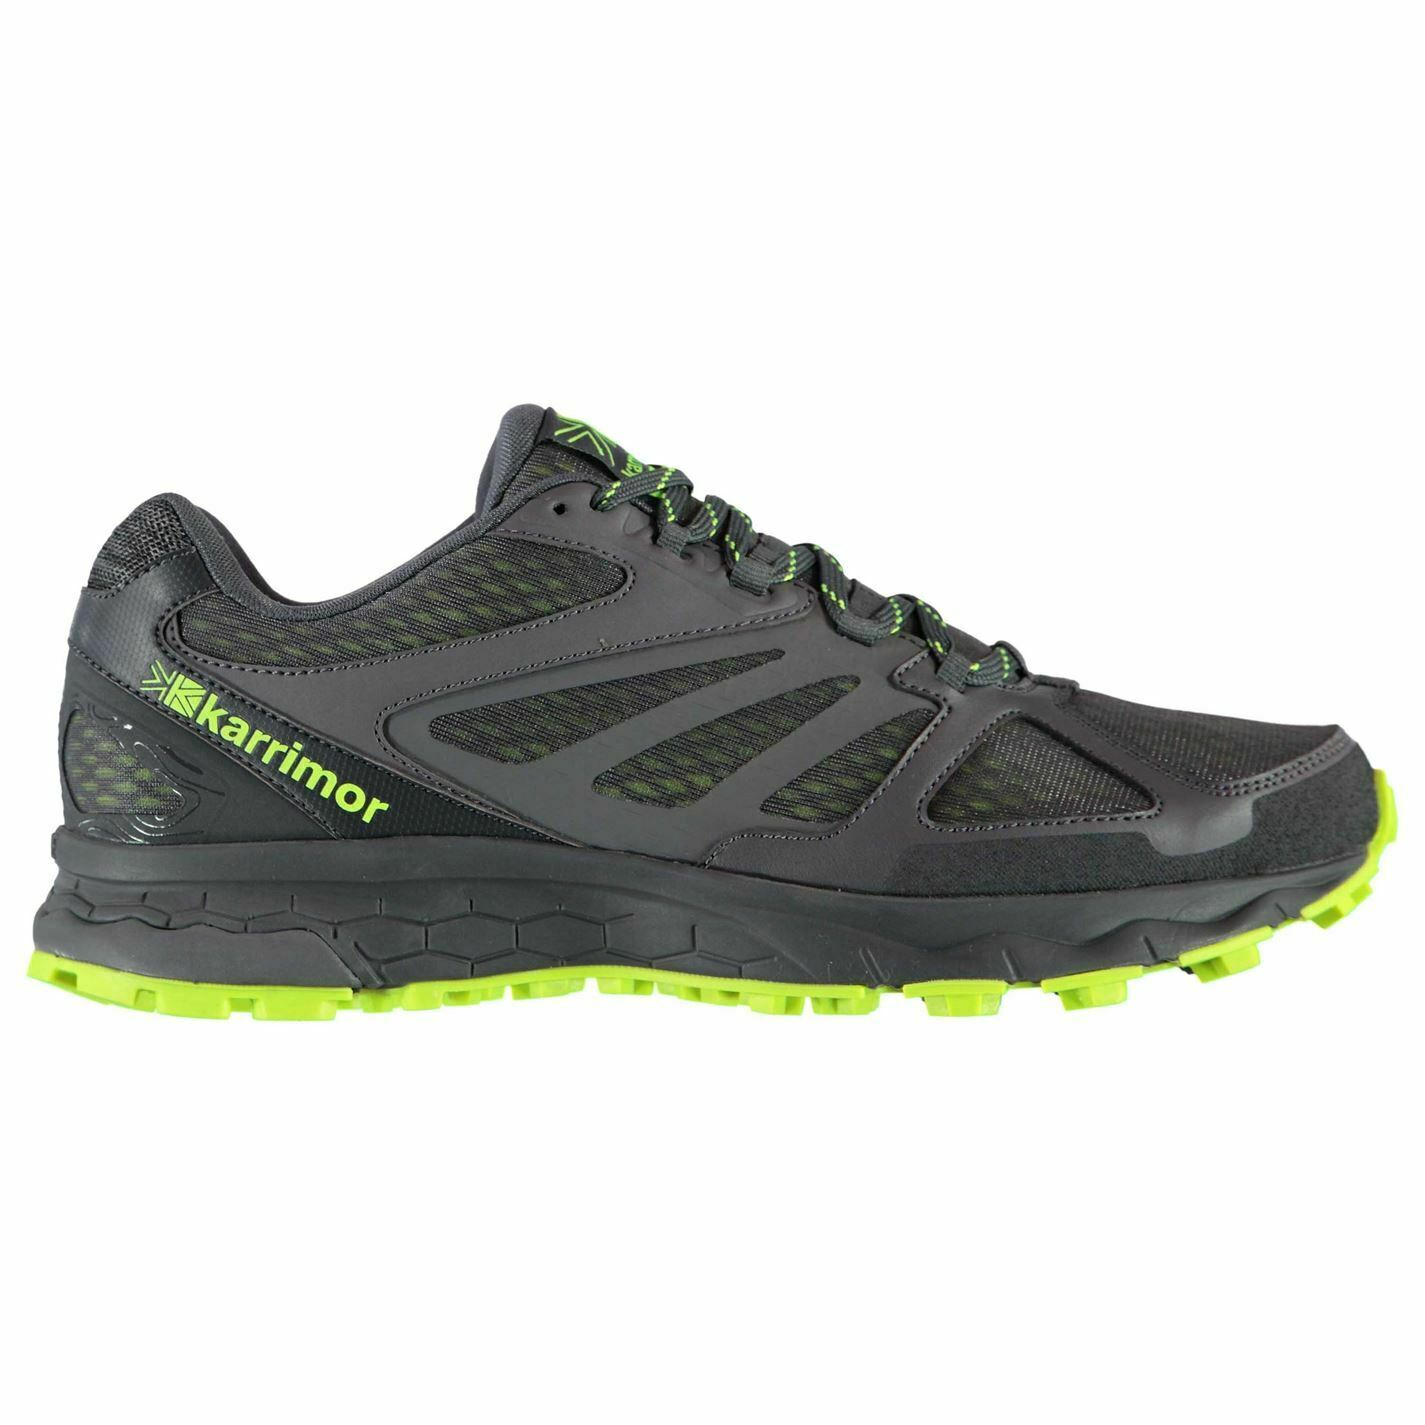 Karrimor Mens  Tempo 5 Trail Running shoes Trainers Lightweight Mesh Upper  save 35% - 70% off